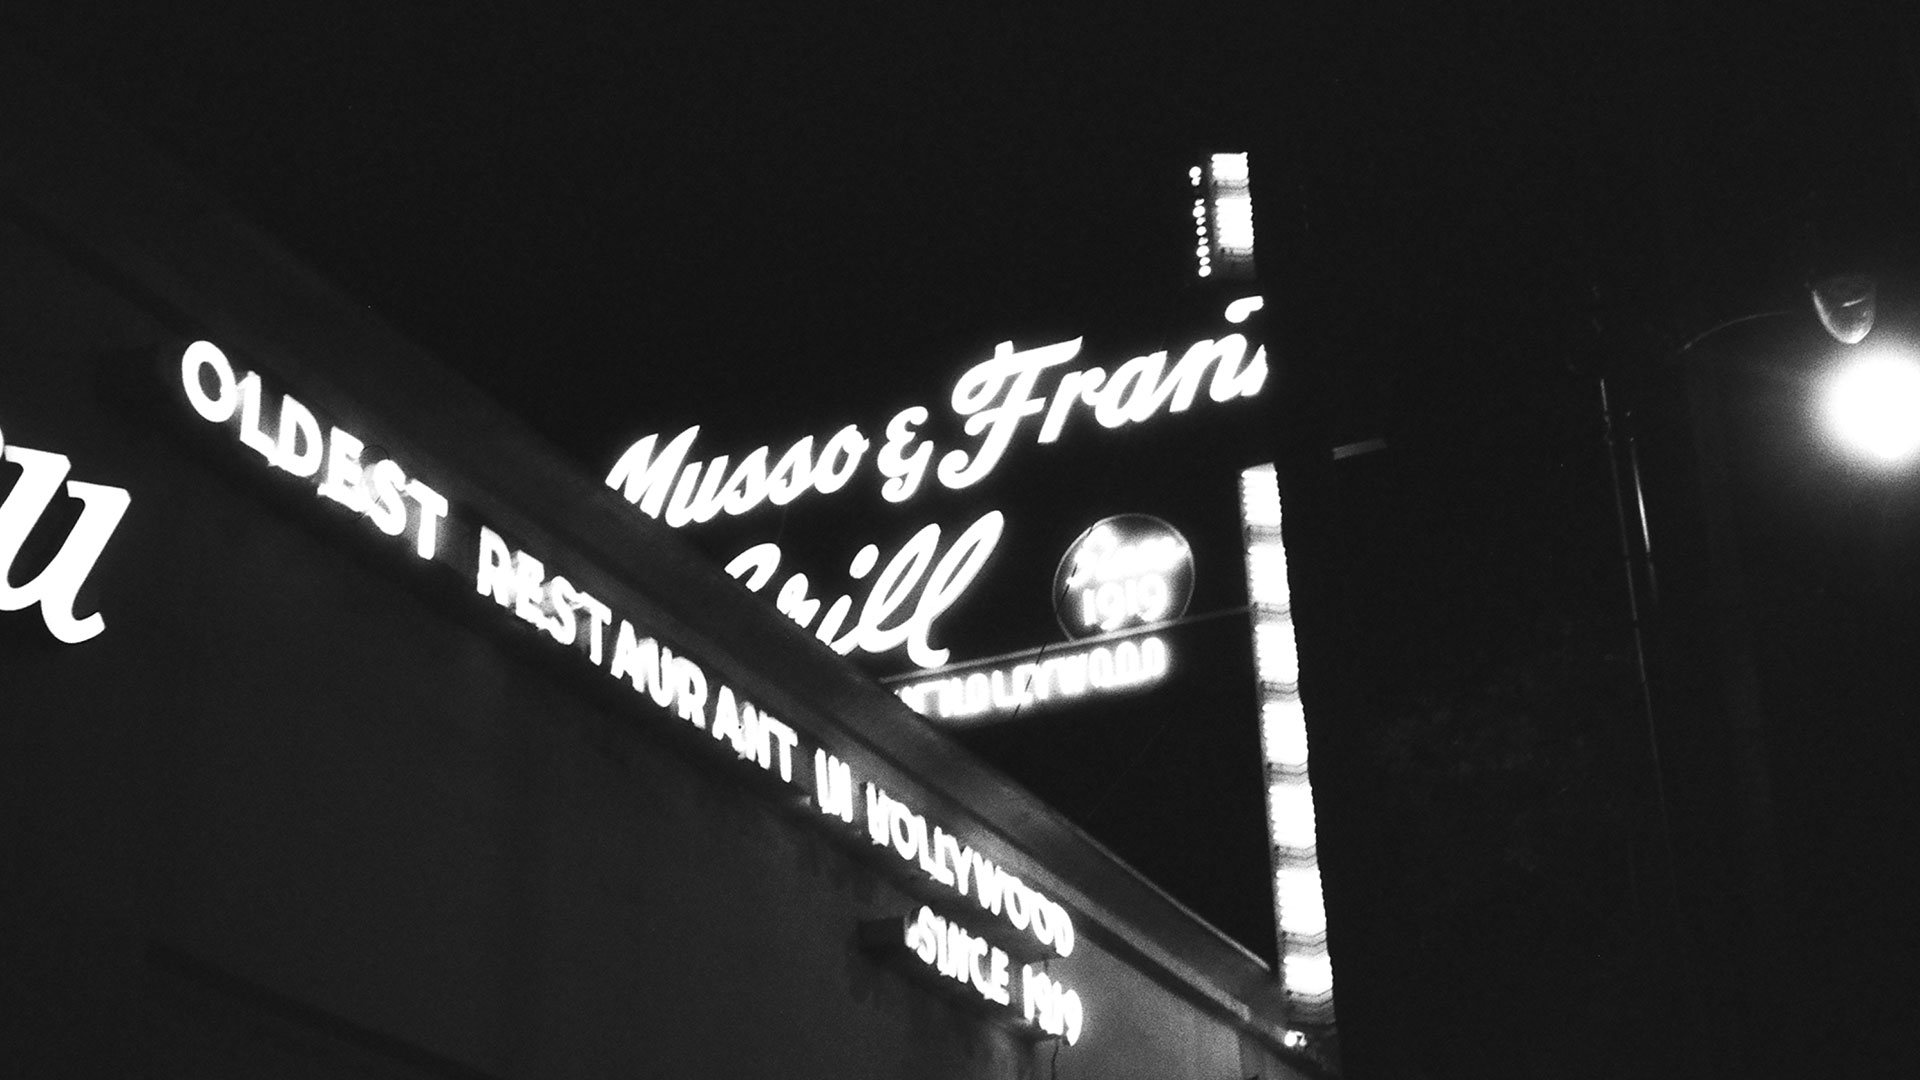 The exterior of Musso & Frank's Grill in Hollywood, California